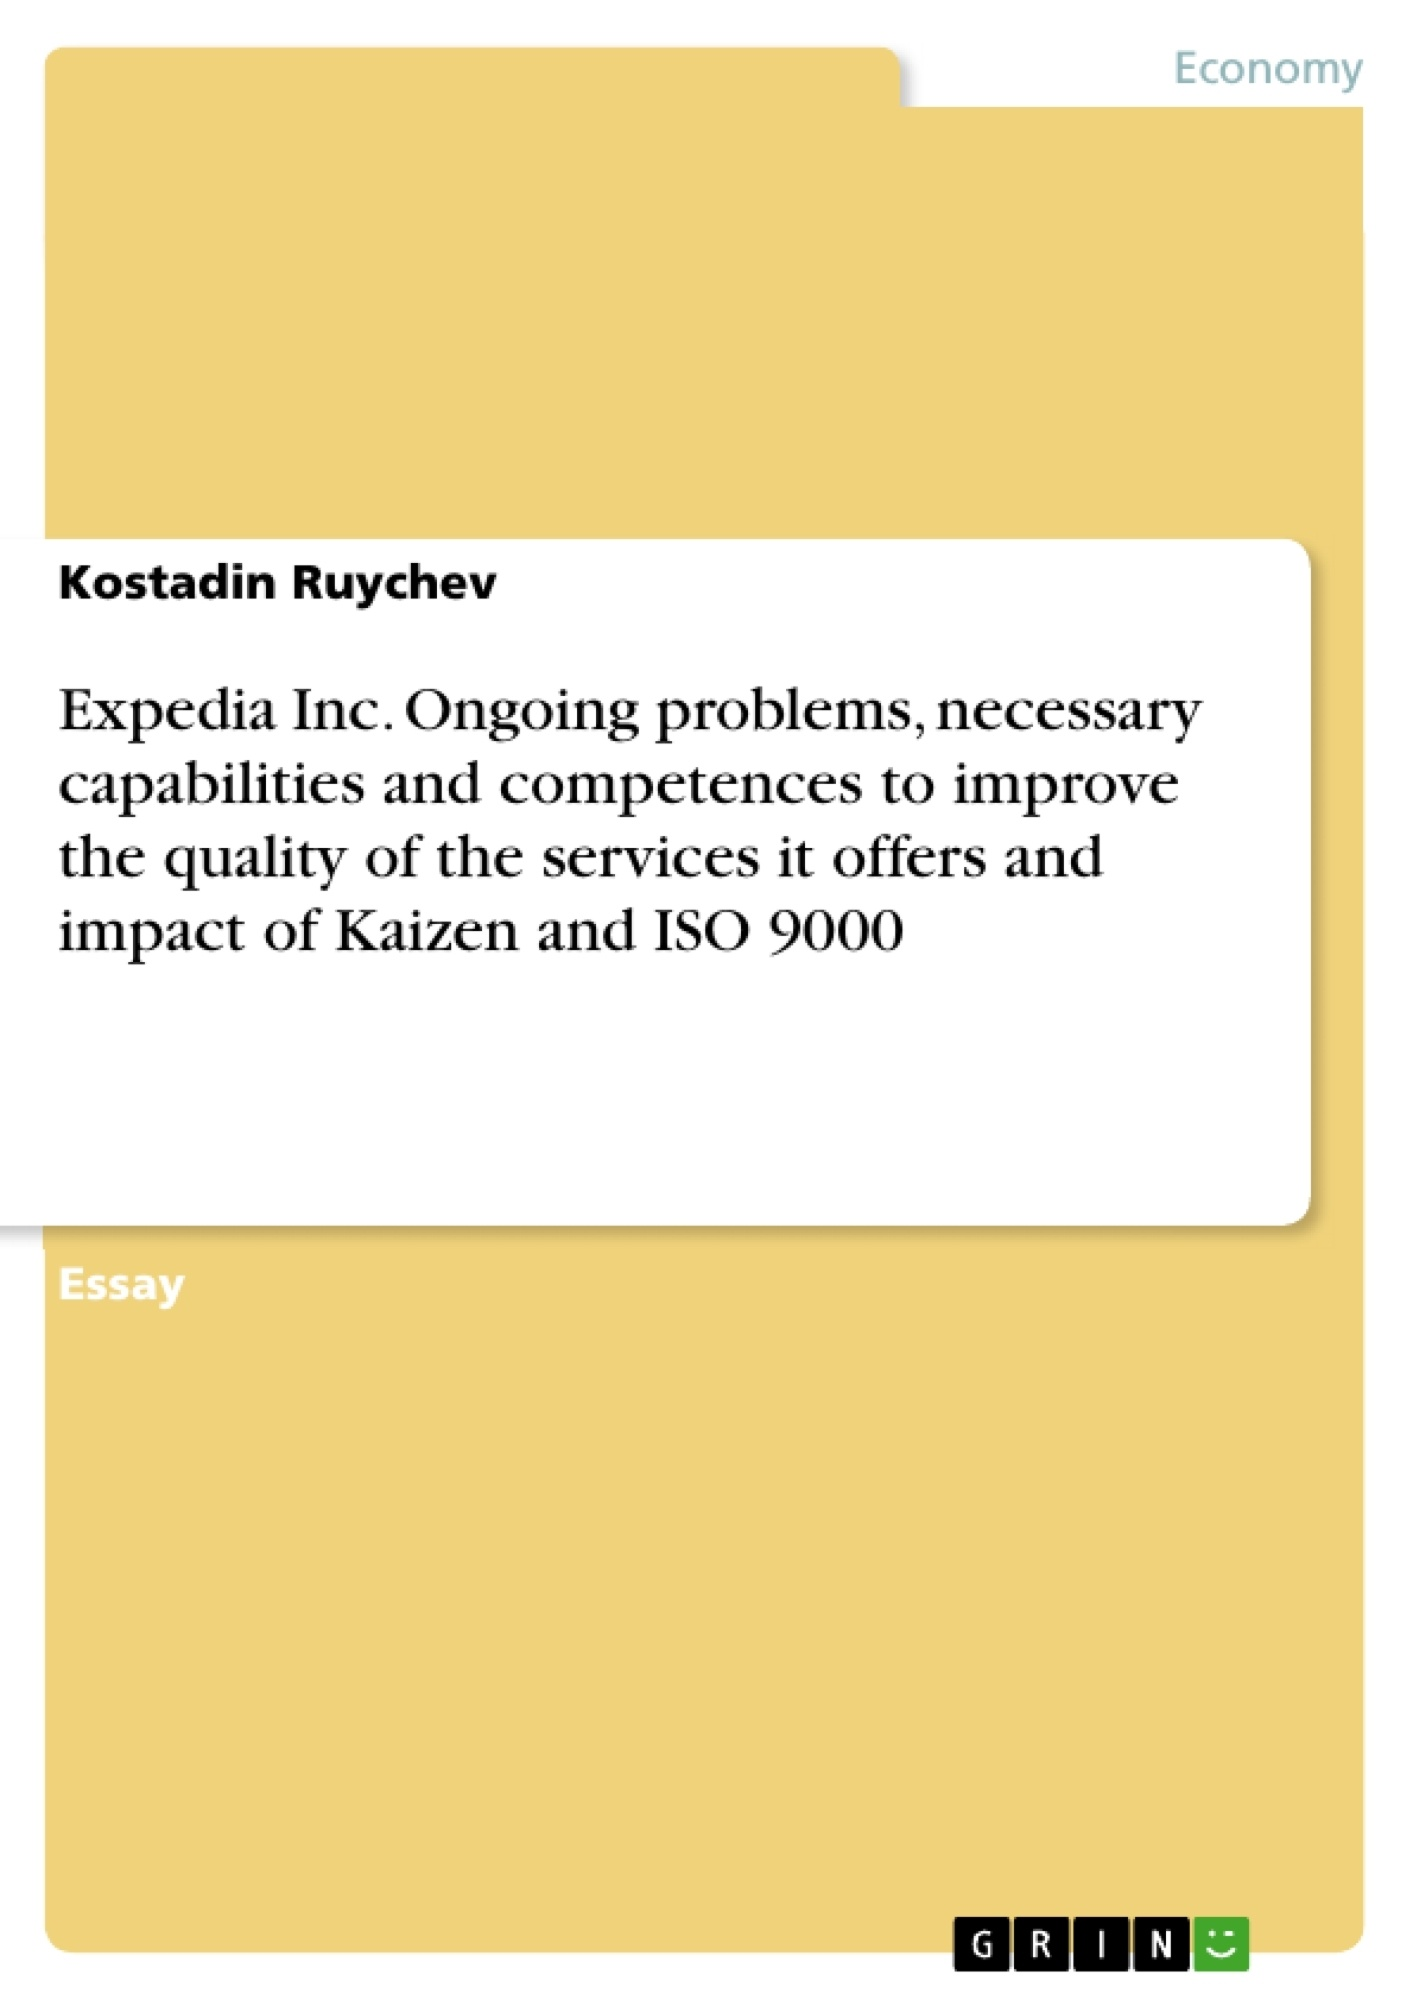 Title: Expedia Inc. Ongoing problems, necessary capabilities and competences to improve the quality of the services it offers and impact of Kaizen and ISO 9000